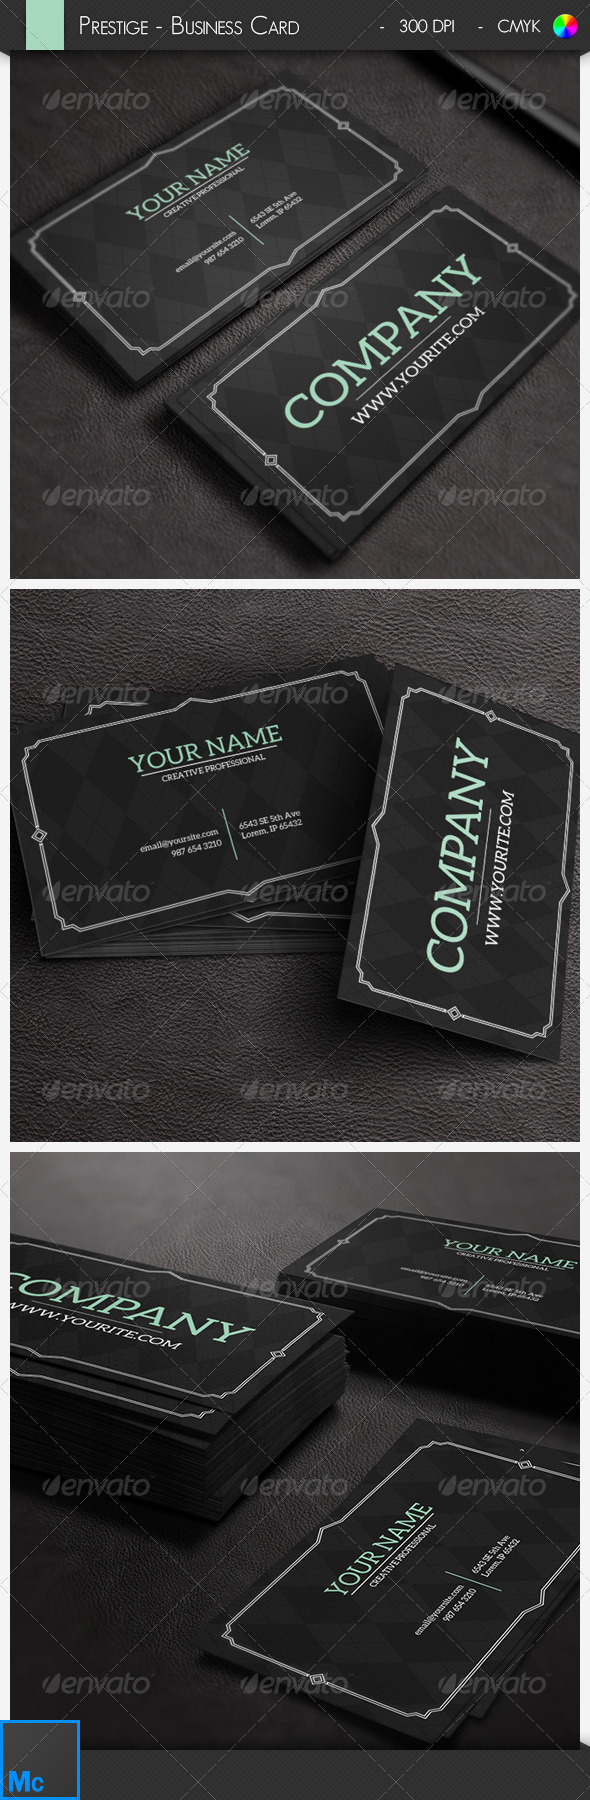 GraphicRiver Prestige Business Card 6533254